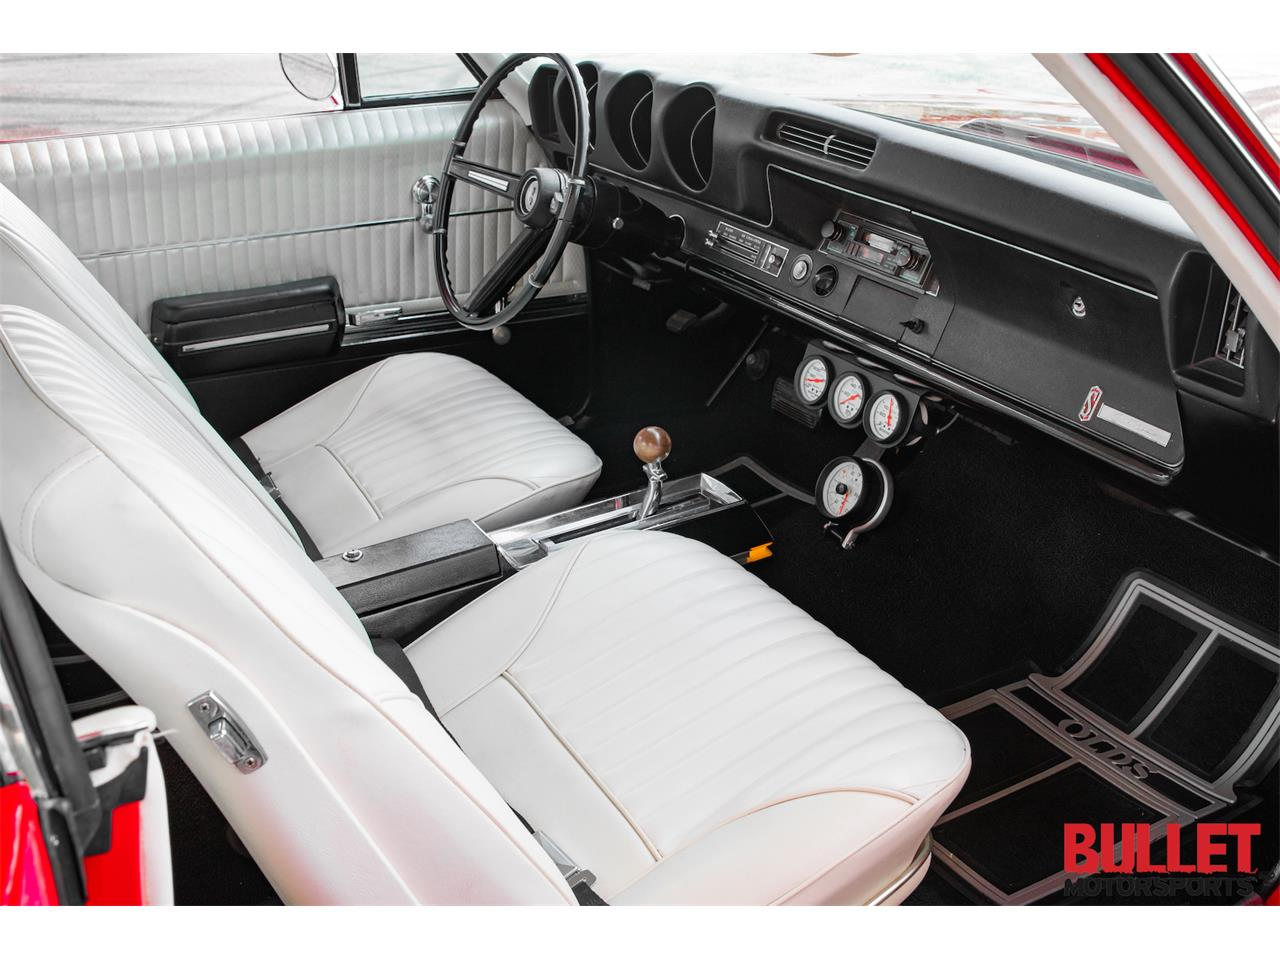 Large Picture of '68 Cutlass Supreme - $30,000.00 - PZS9